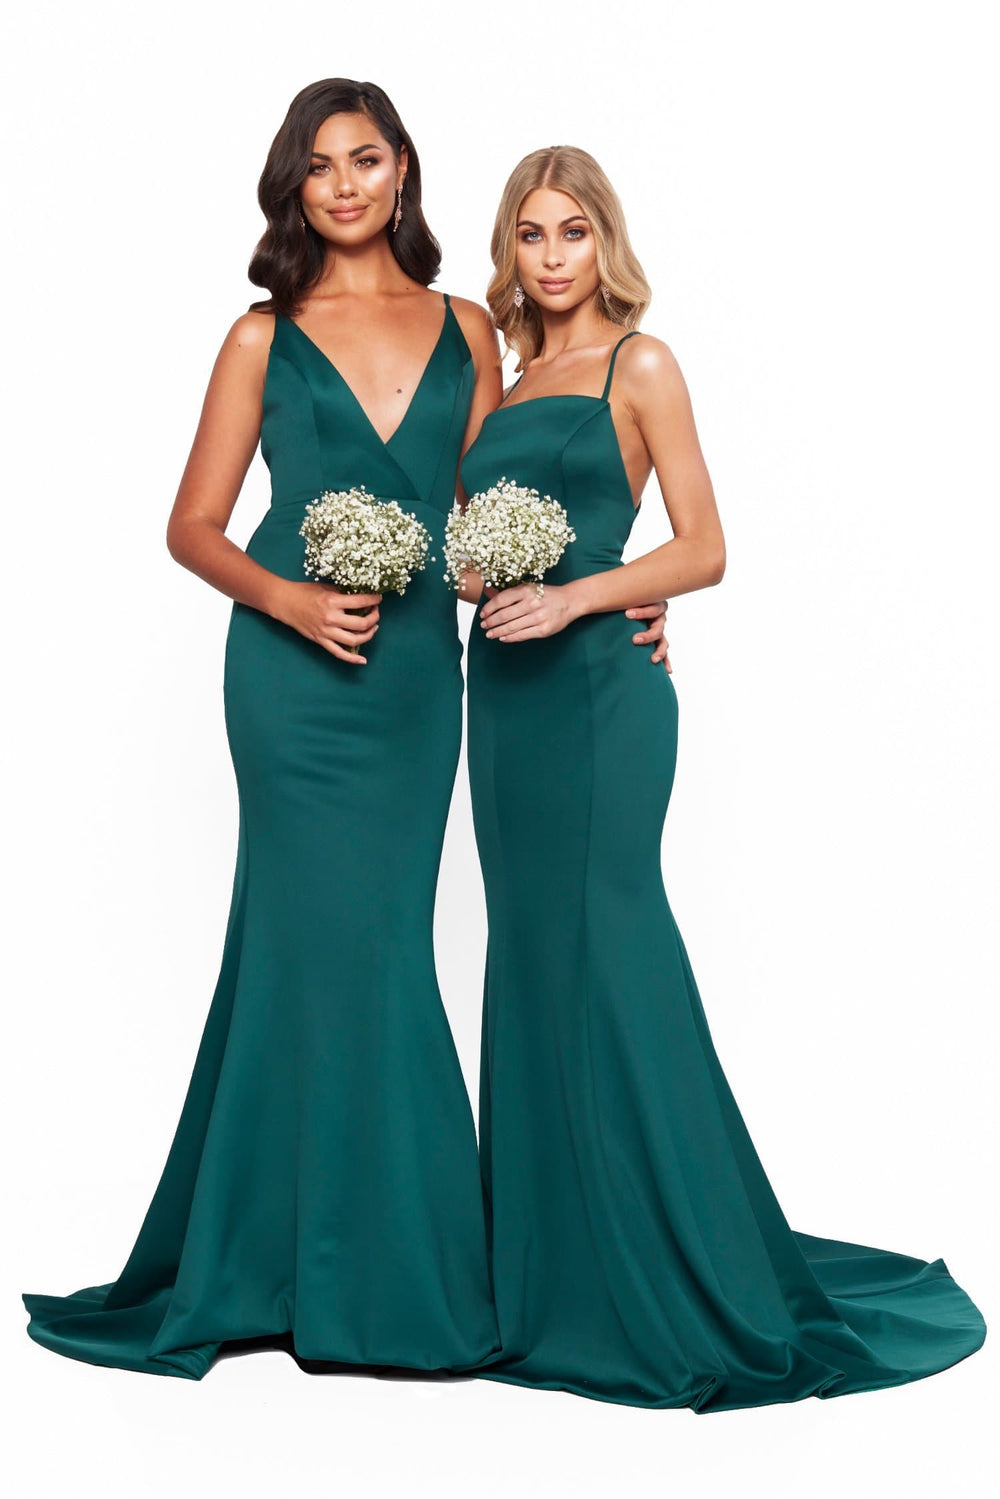 A&N Bridesmaids Jada V-Neck Backless Mermaid Ponti Gown - Emerald